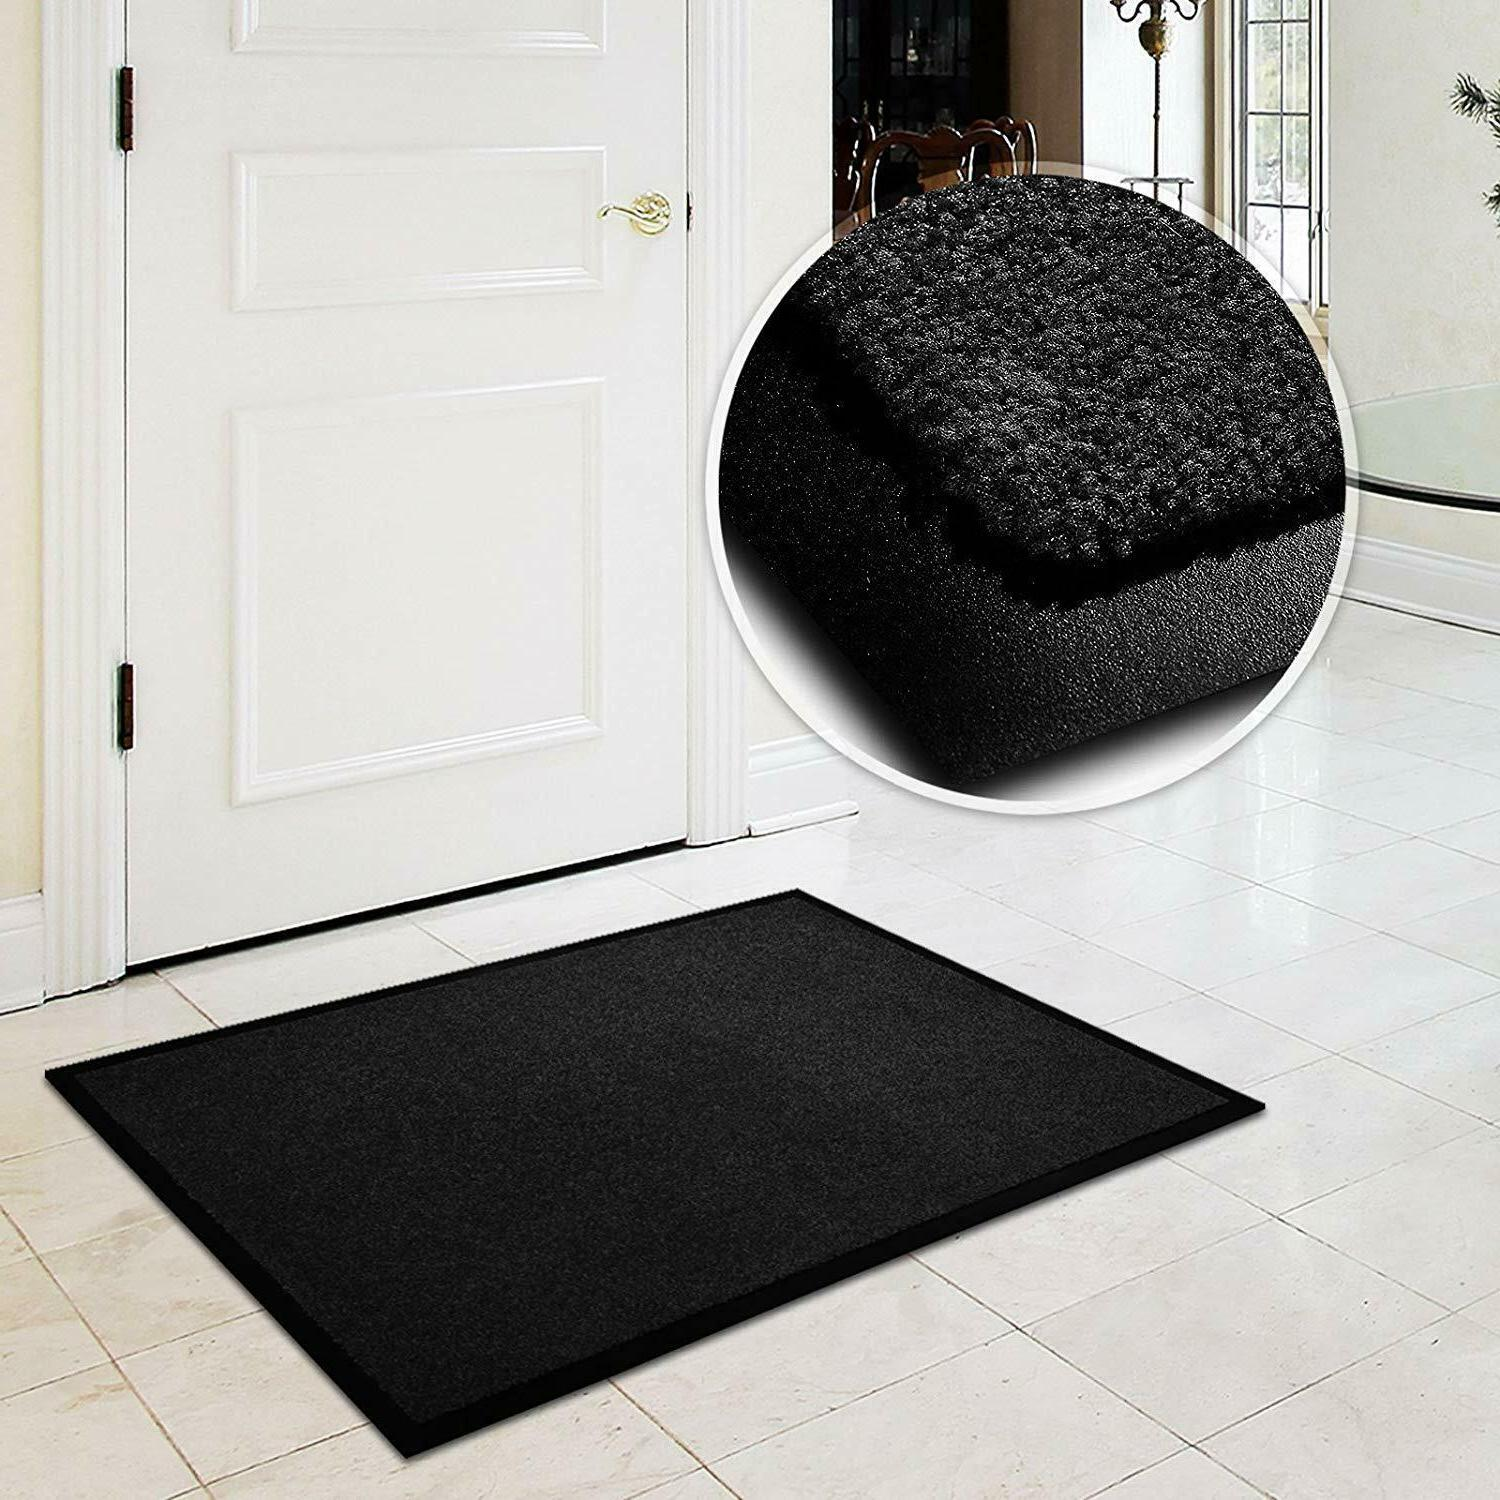 Casa Europe's # Door Mat and